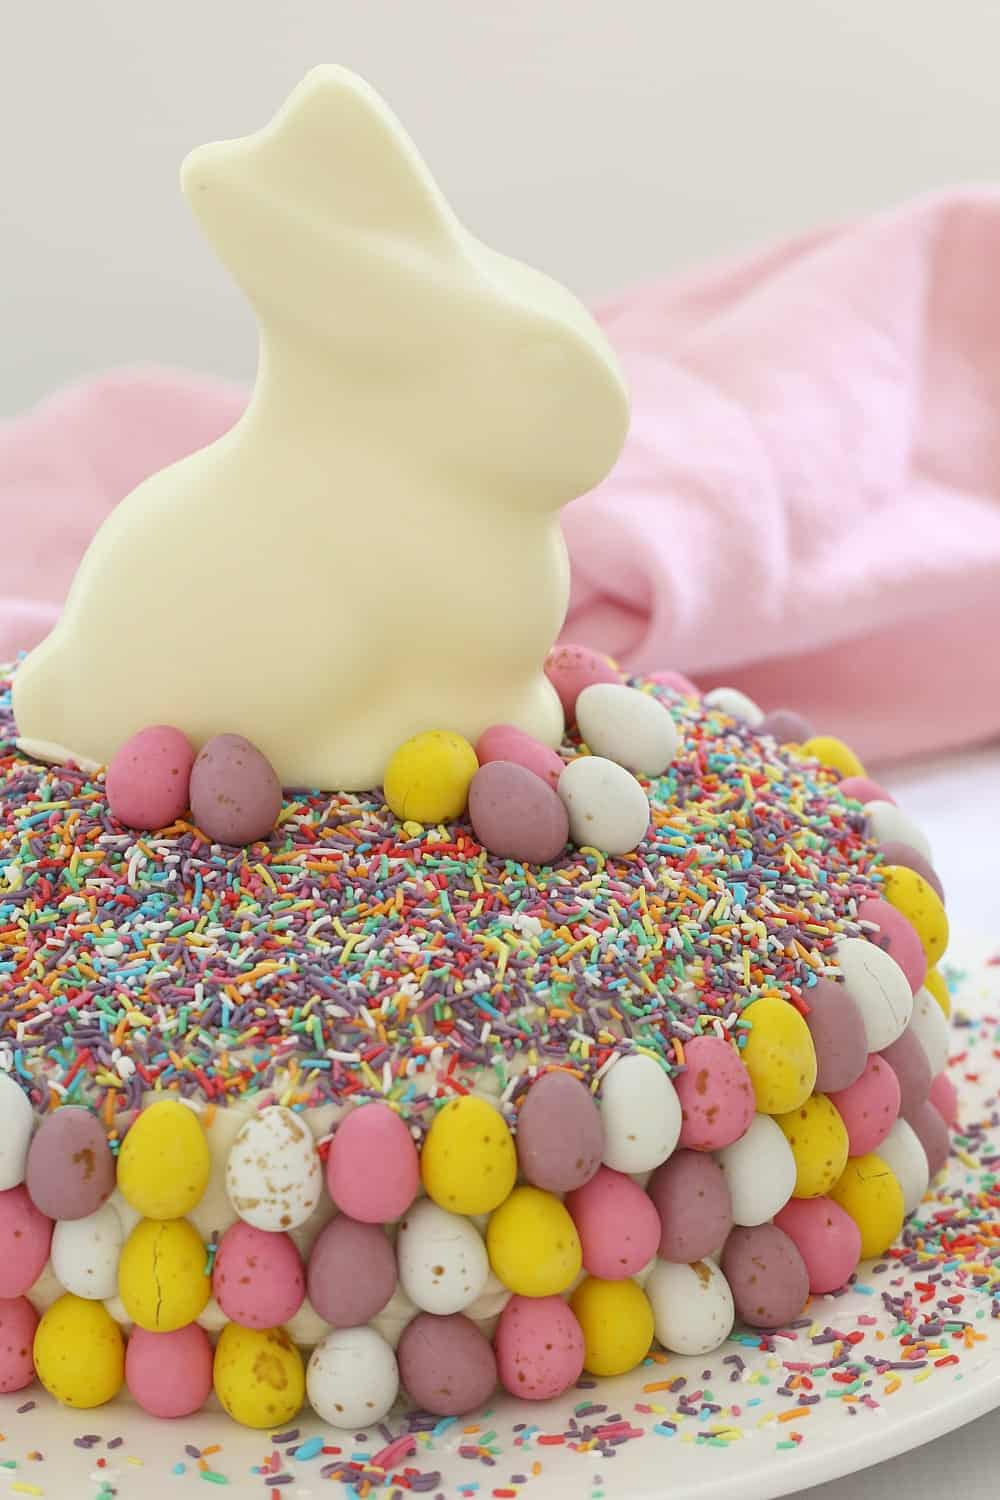 Colourful chocolate easter eggs and sprinkles on a cake.